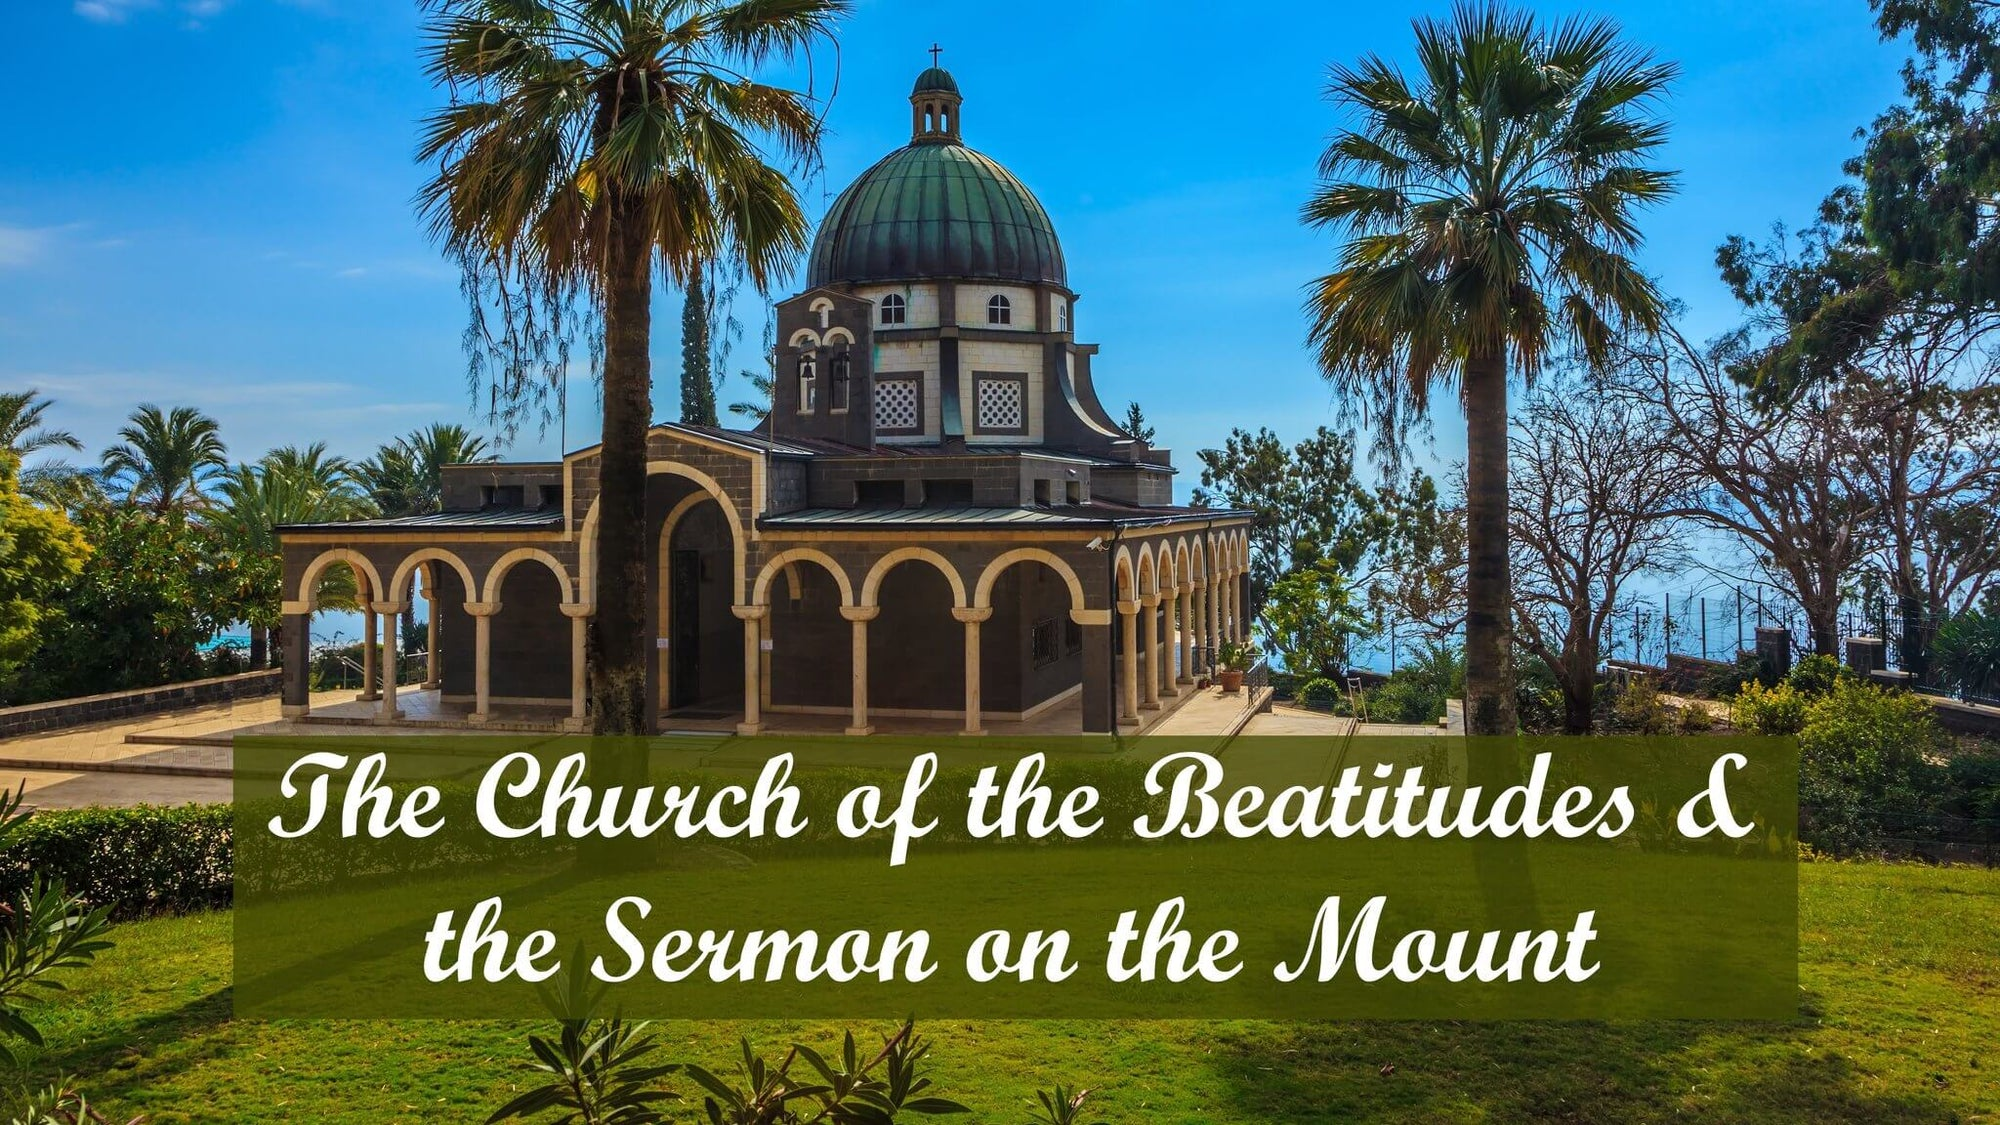 The Church of the Beatitudes & the Sermon on the Mount